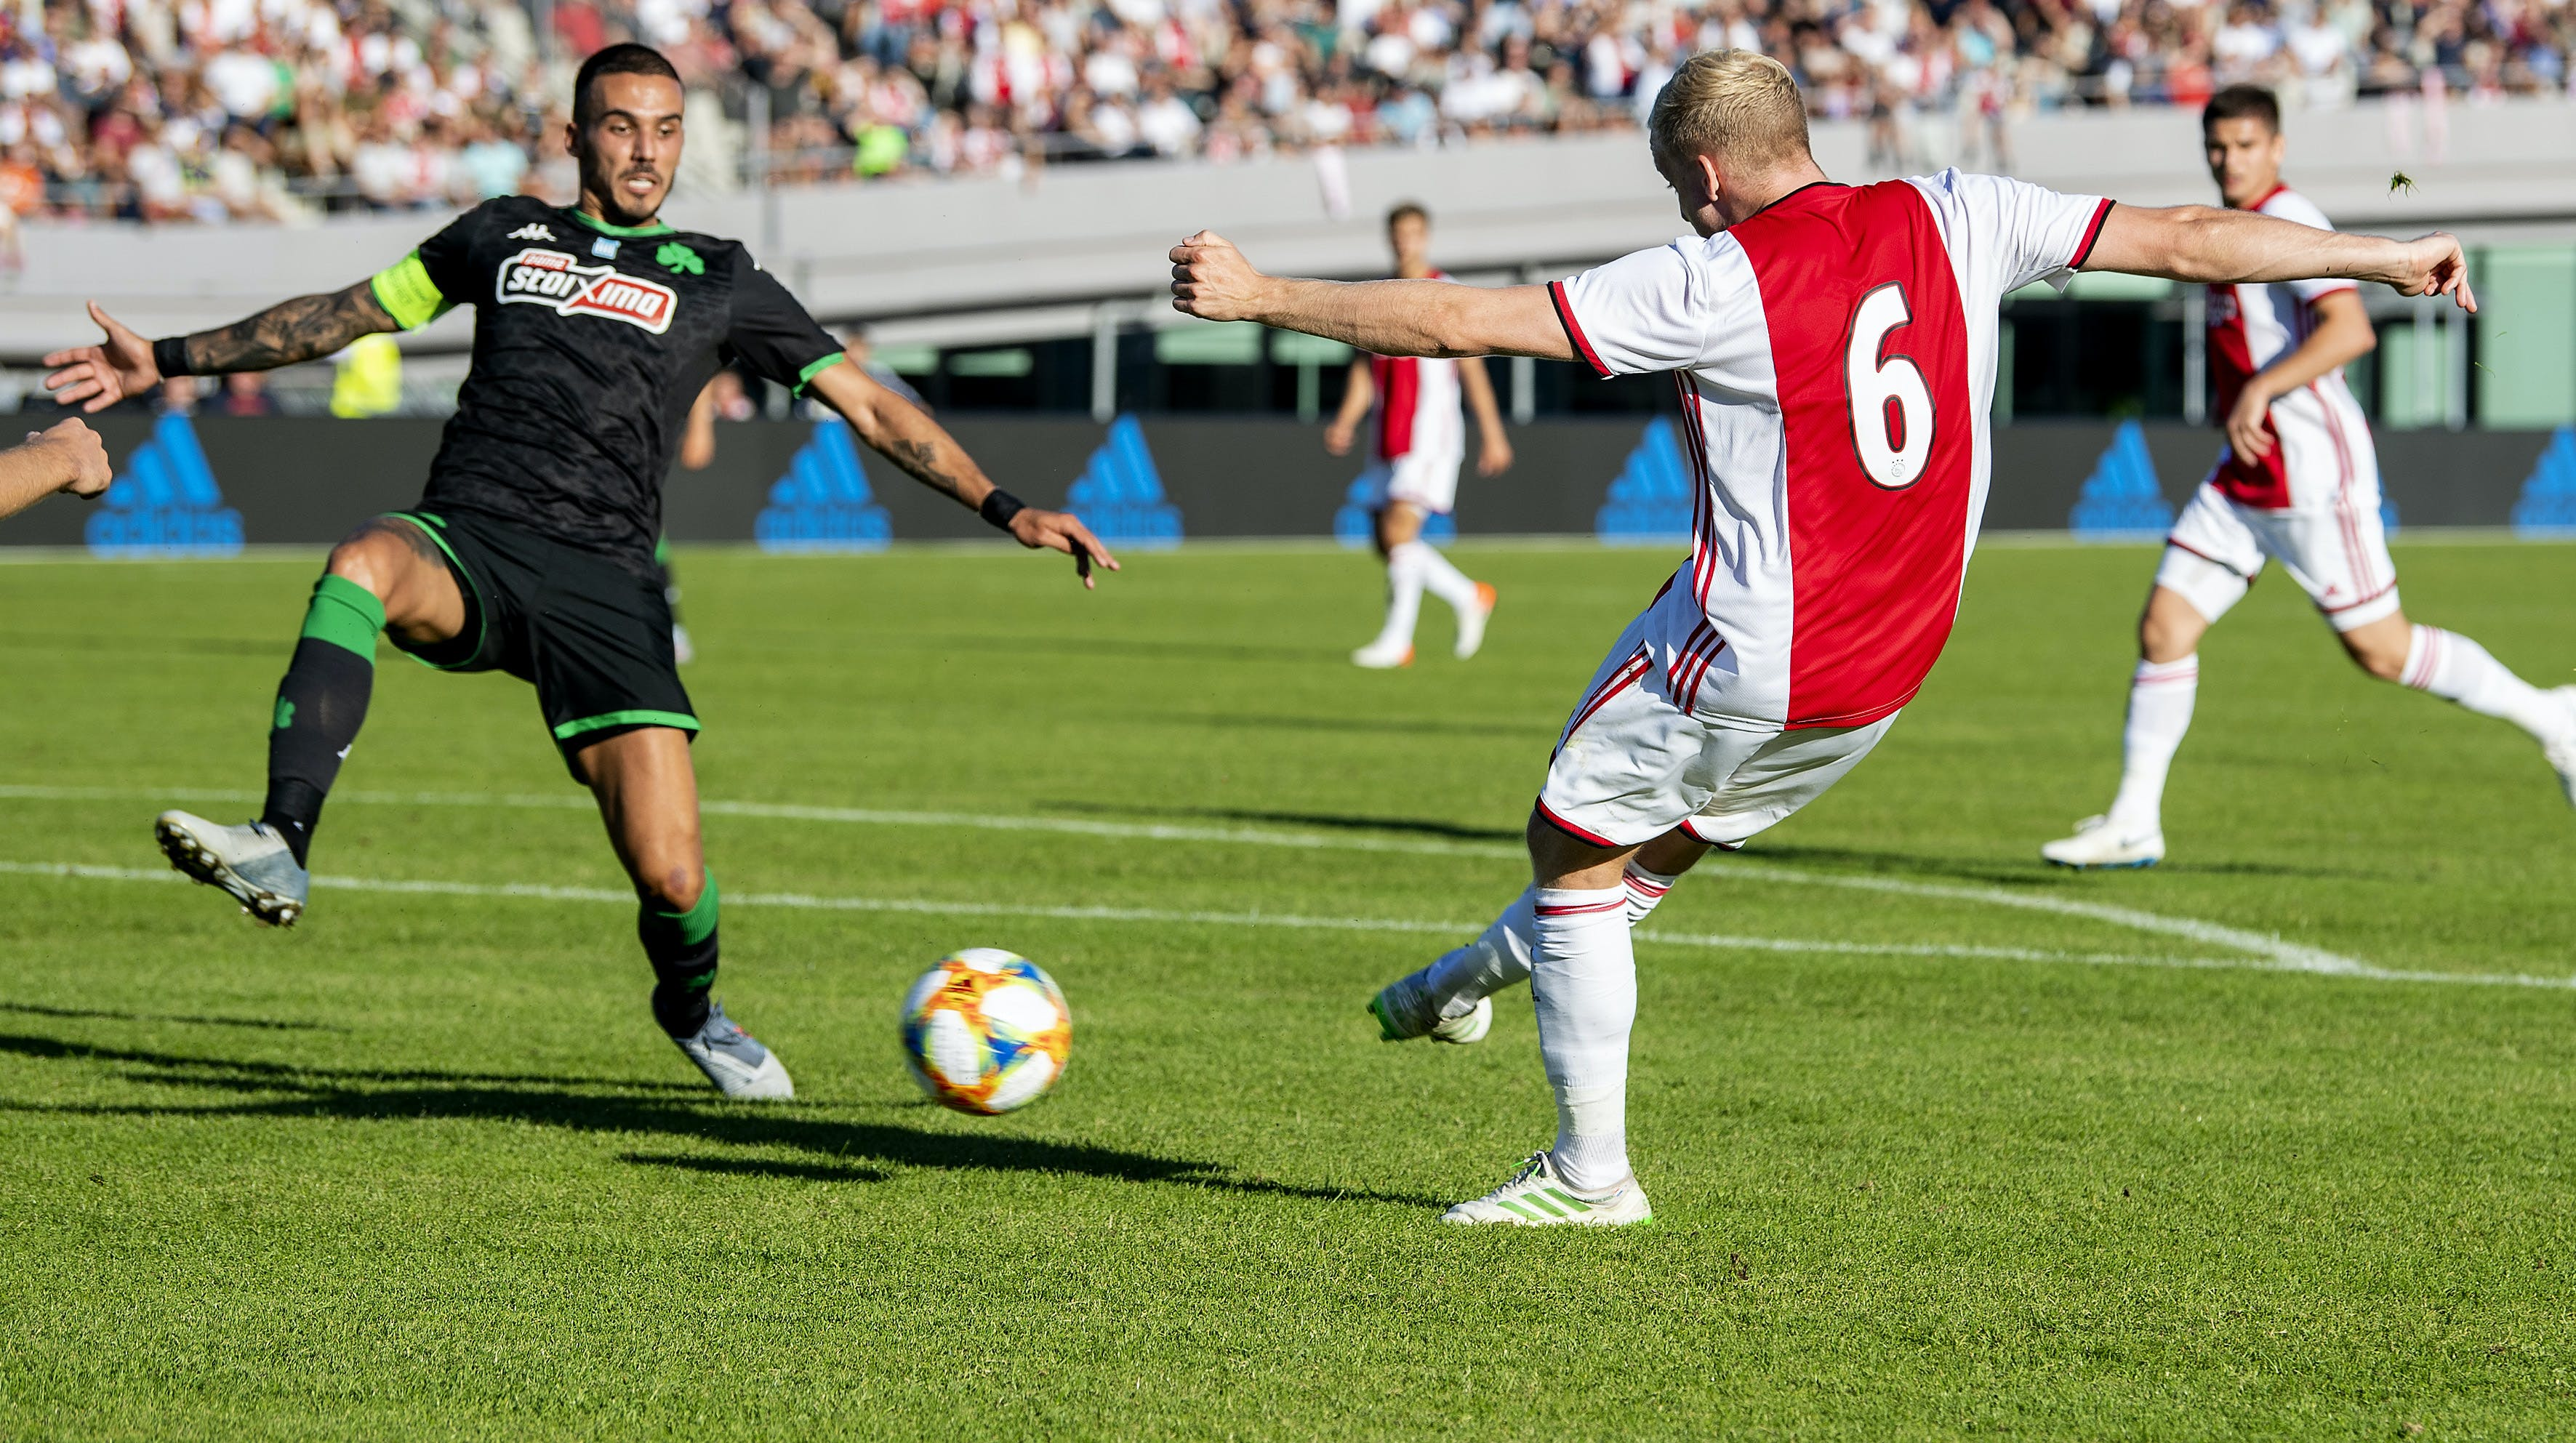 Samenvatting Ajax - Panathinaikos